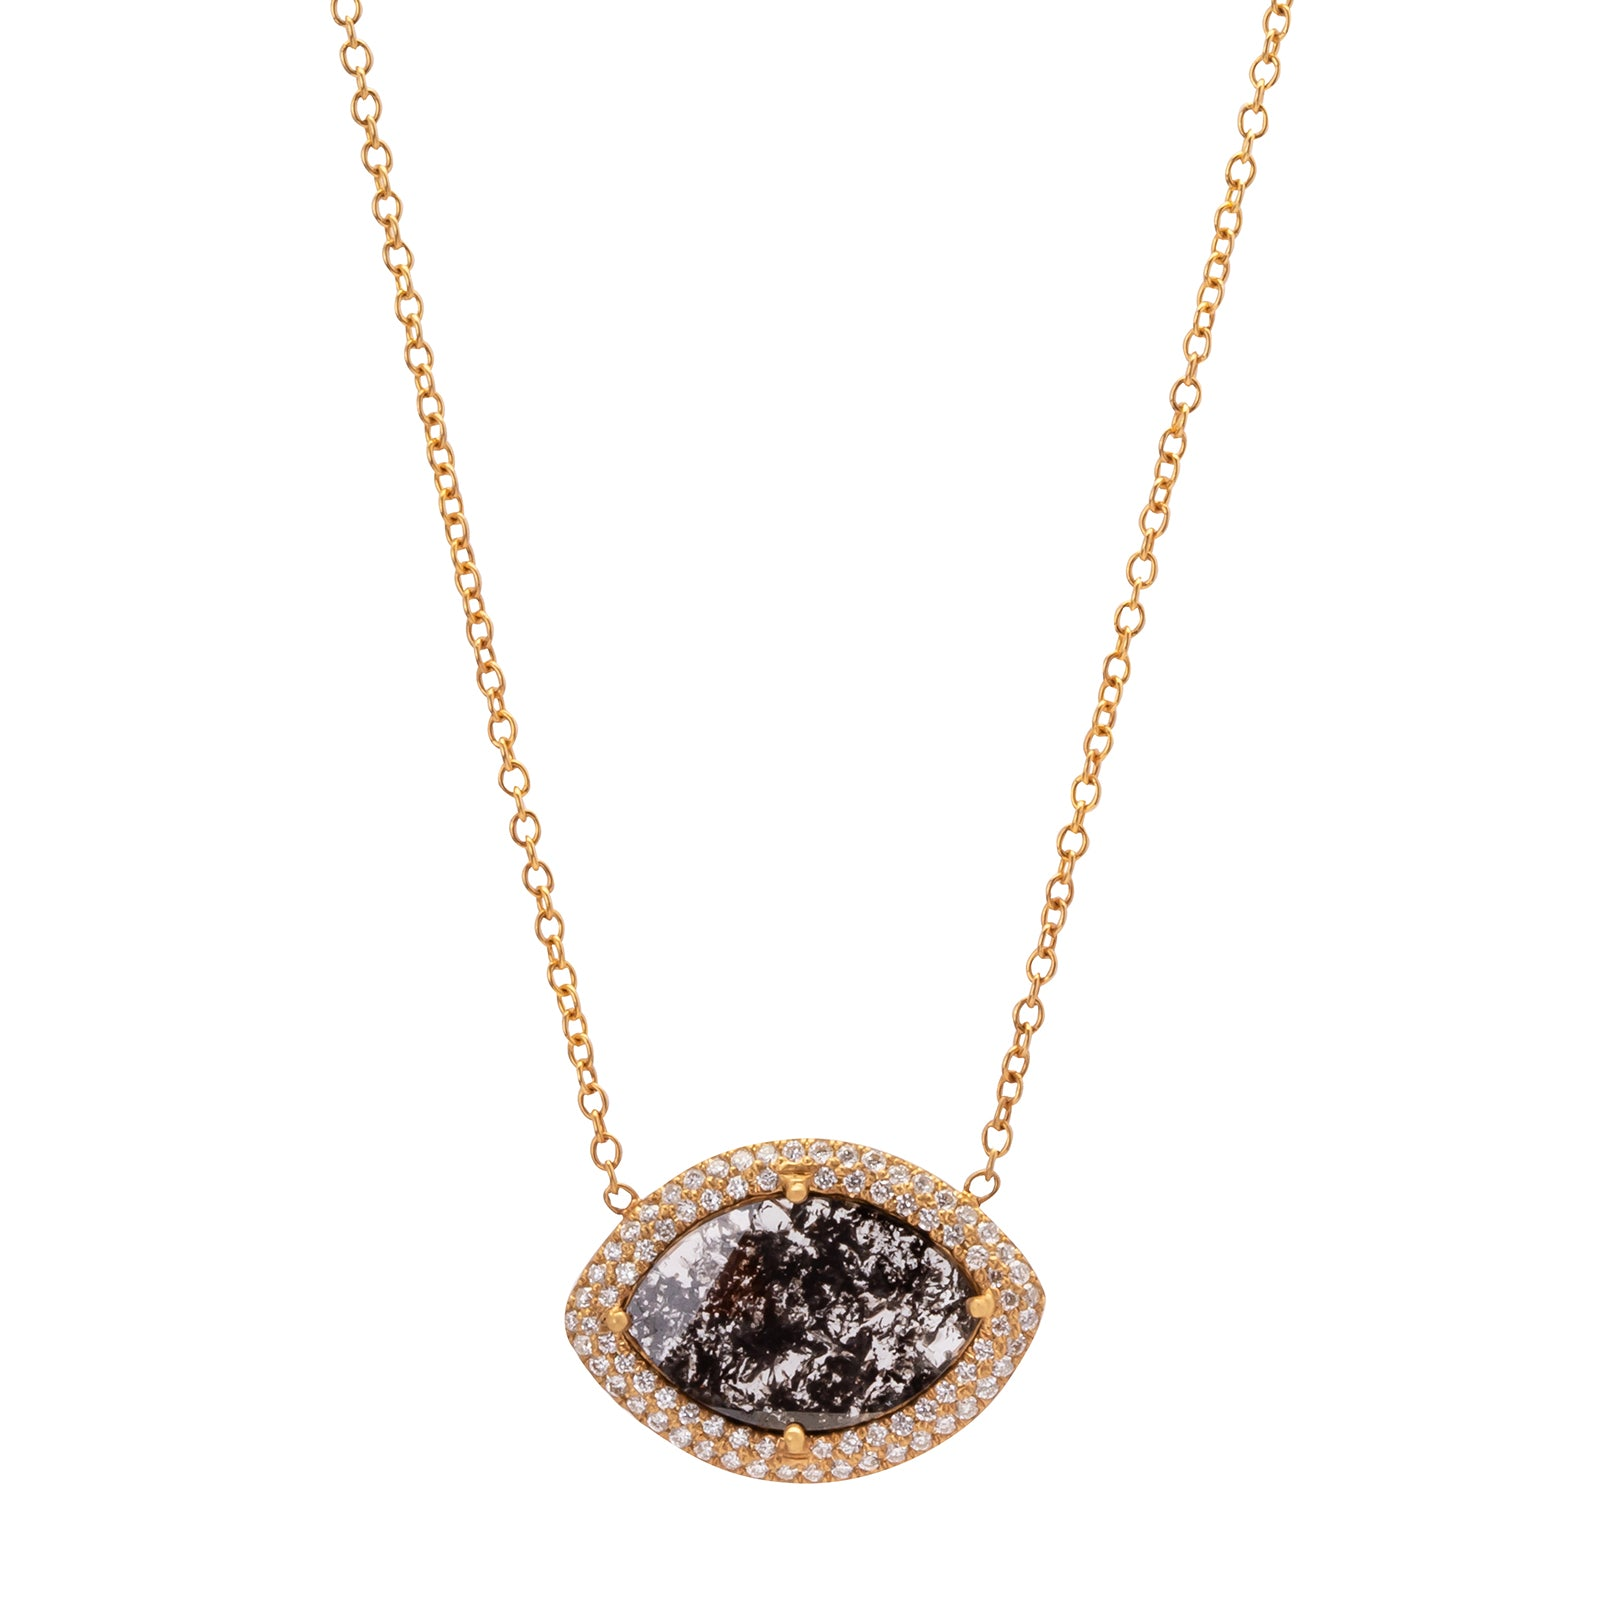 Loriann Stevenson Diamond Eye Necklace - Necklaces - Broken English Jewelry